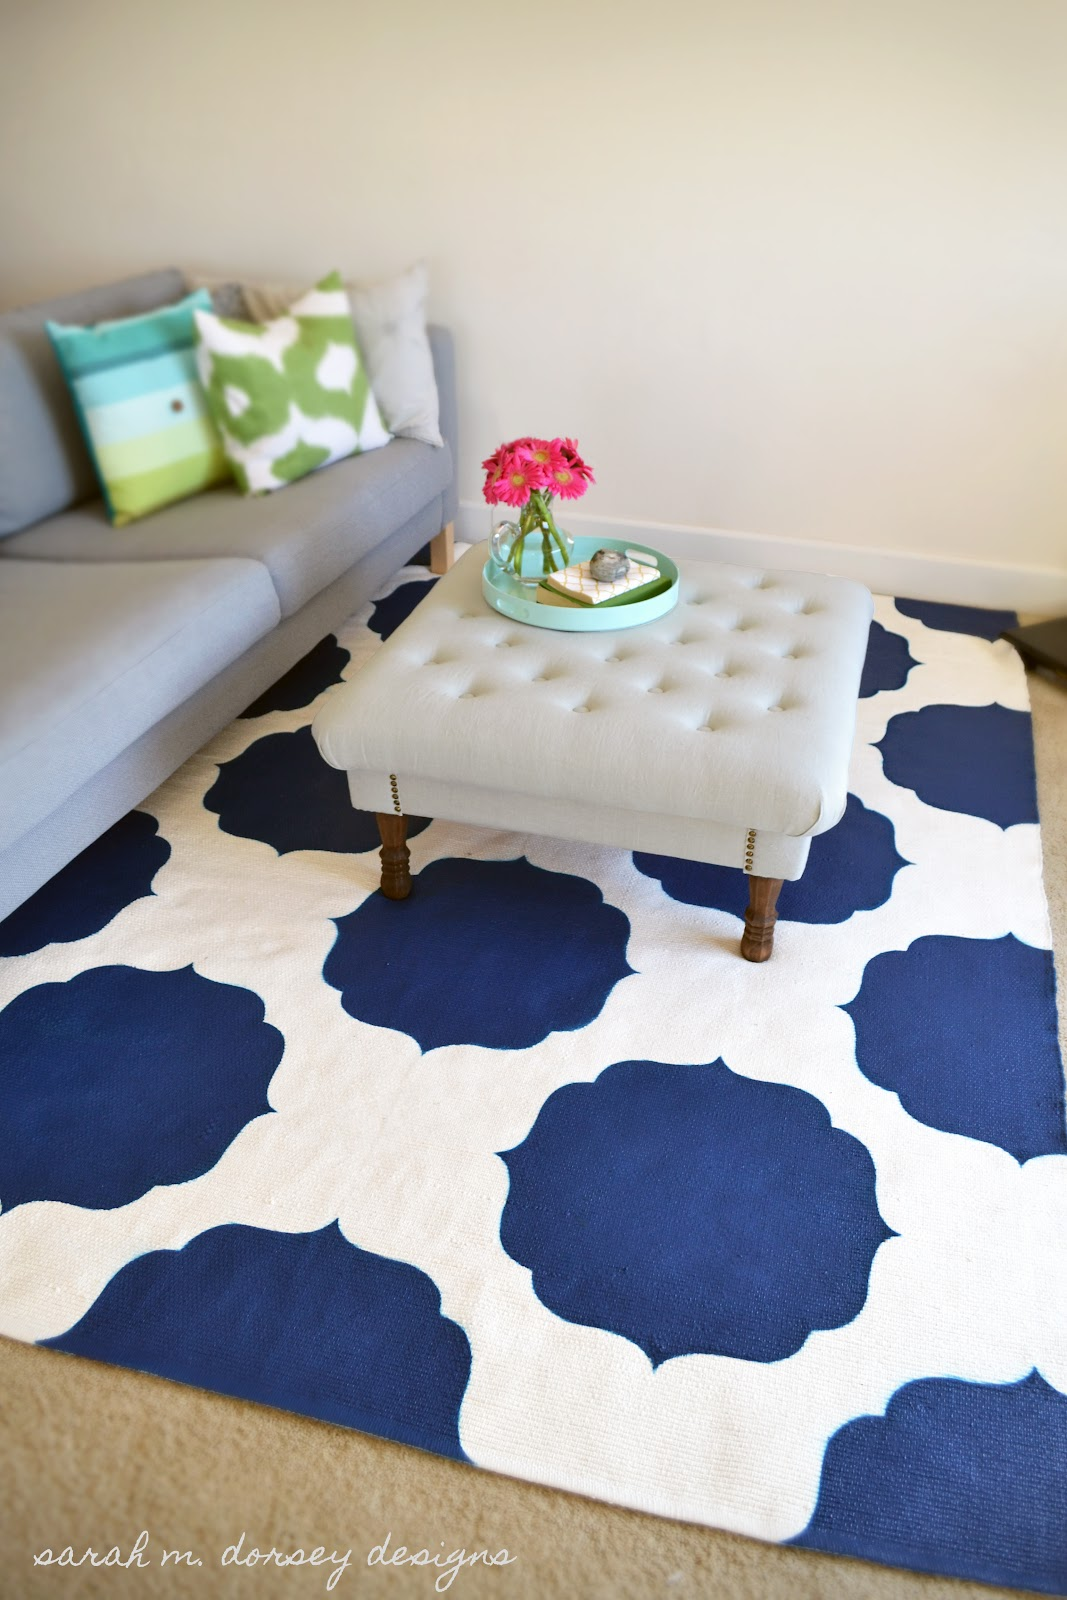 DIY Stenciled Morrocan Rug - The 36th AVENUE